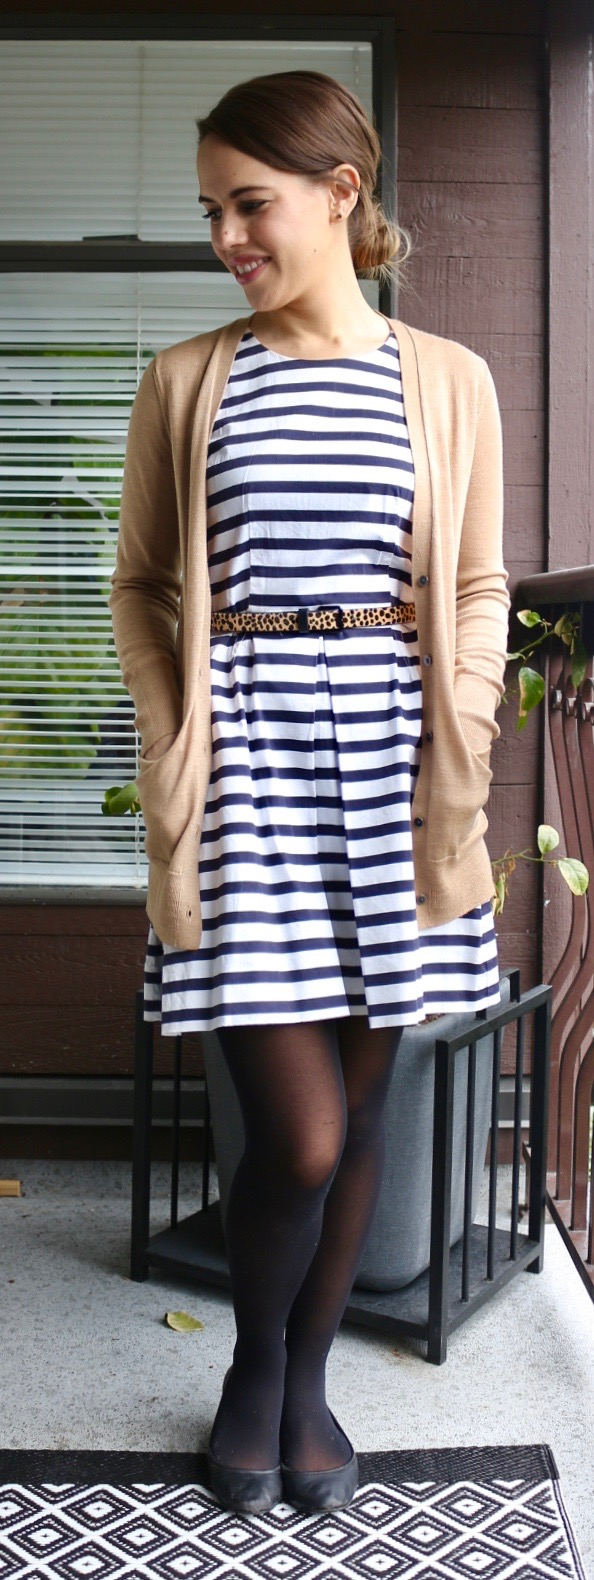 Jules in Flats - Gap Striped Fit and Flare Dress, Leopard Print Belt, Camel Cardigan